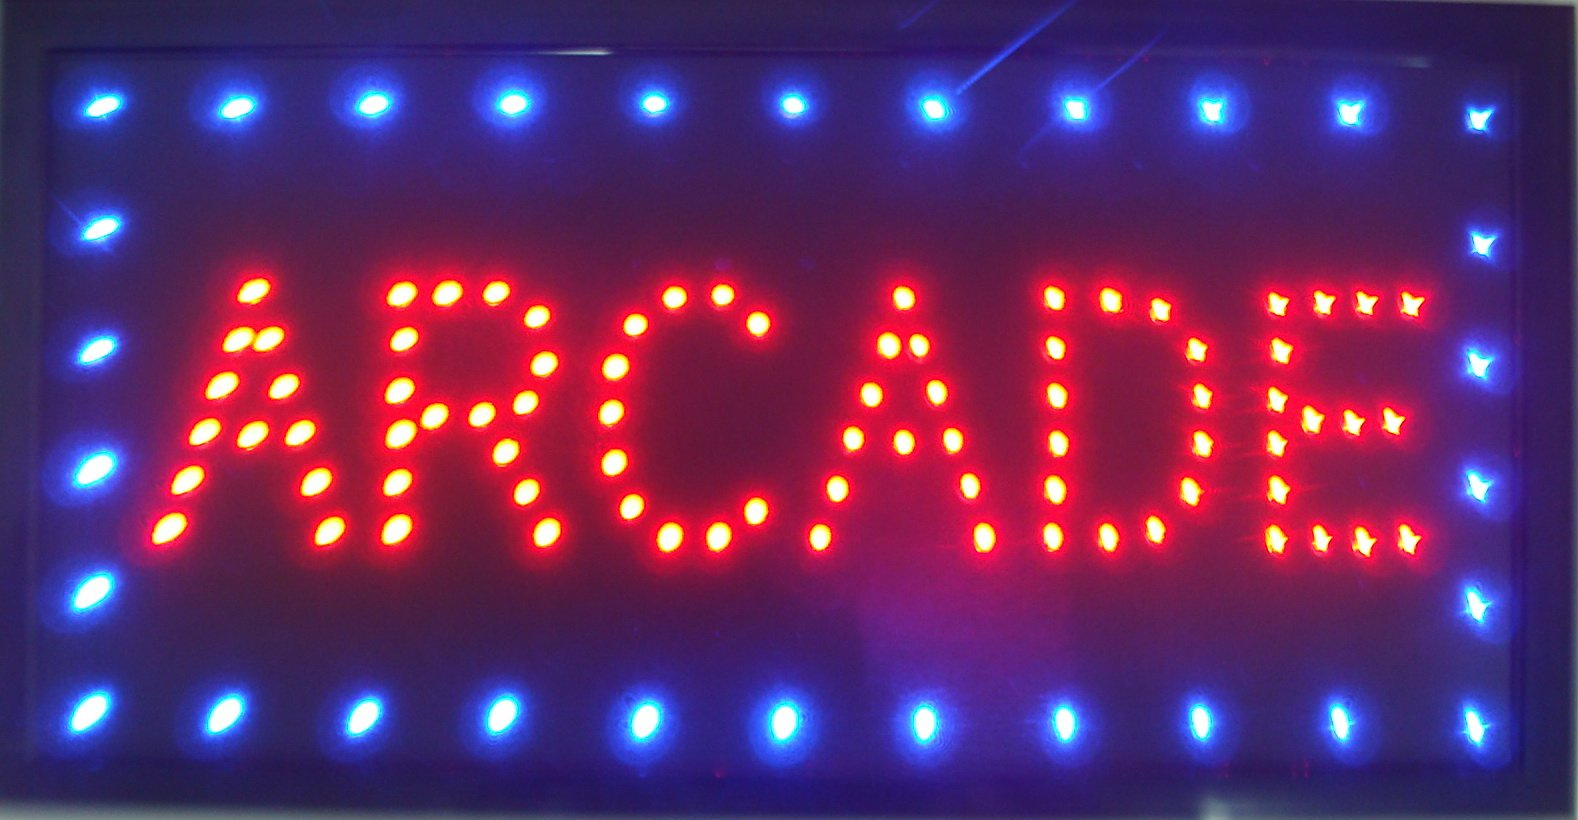 CHENXI LED Arcade Shop Open Sign Special Offer Graphics Ultra Bright Flashing 10 x19 Inch(48X25 cm) Store Signboard (48 X 25 cm, Arcade)